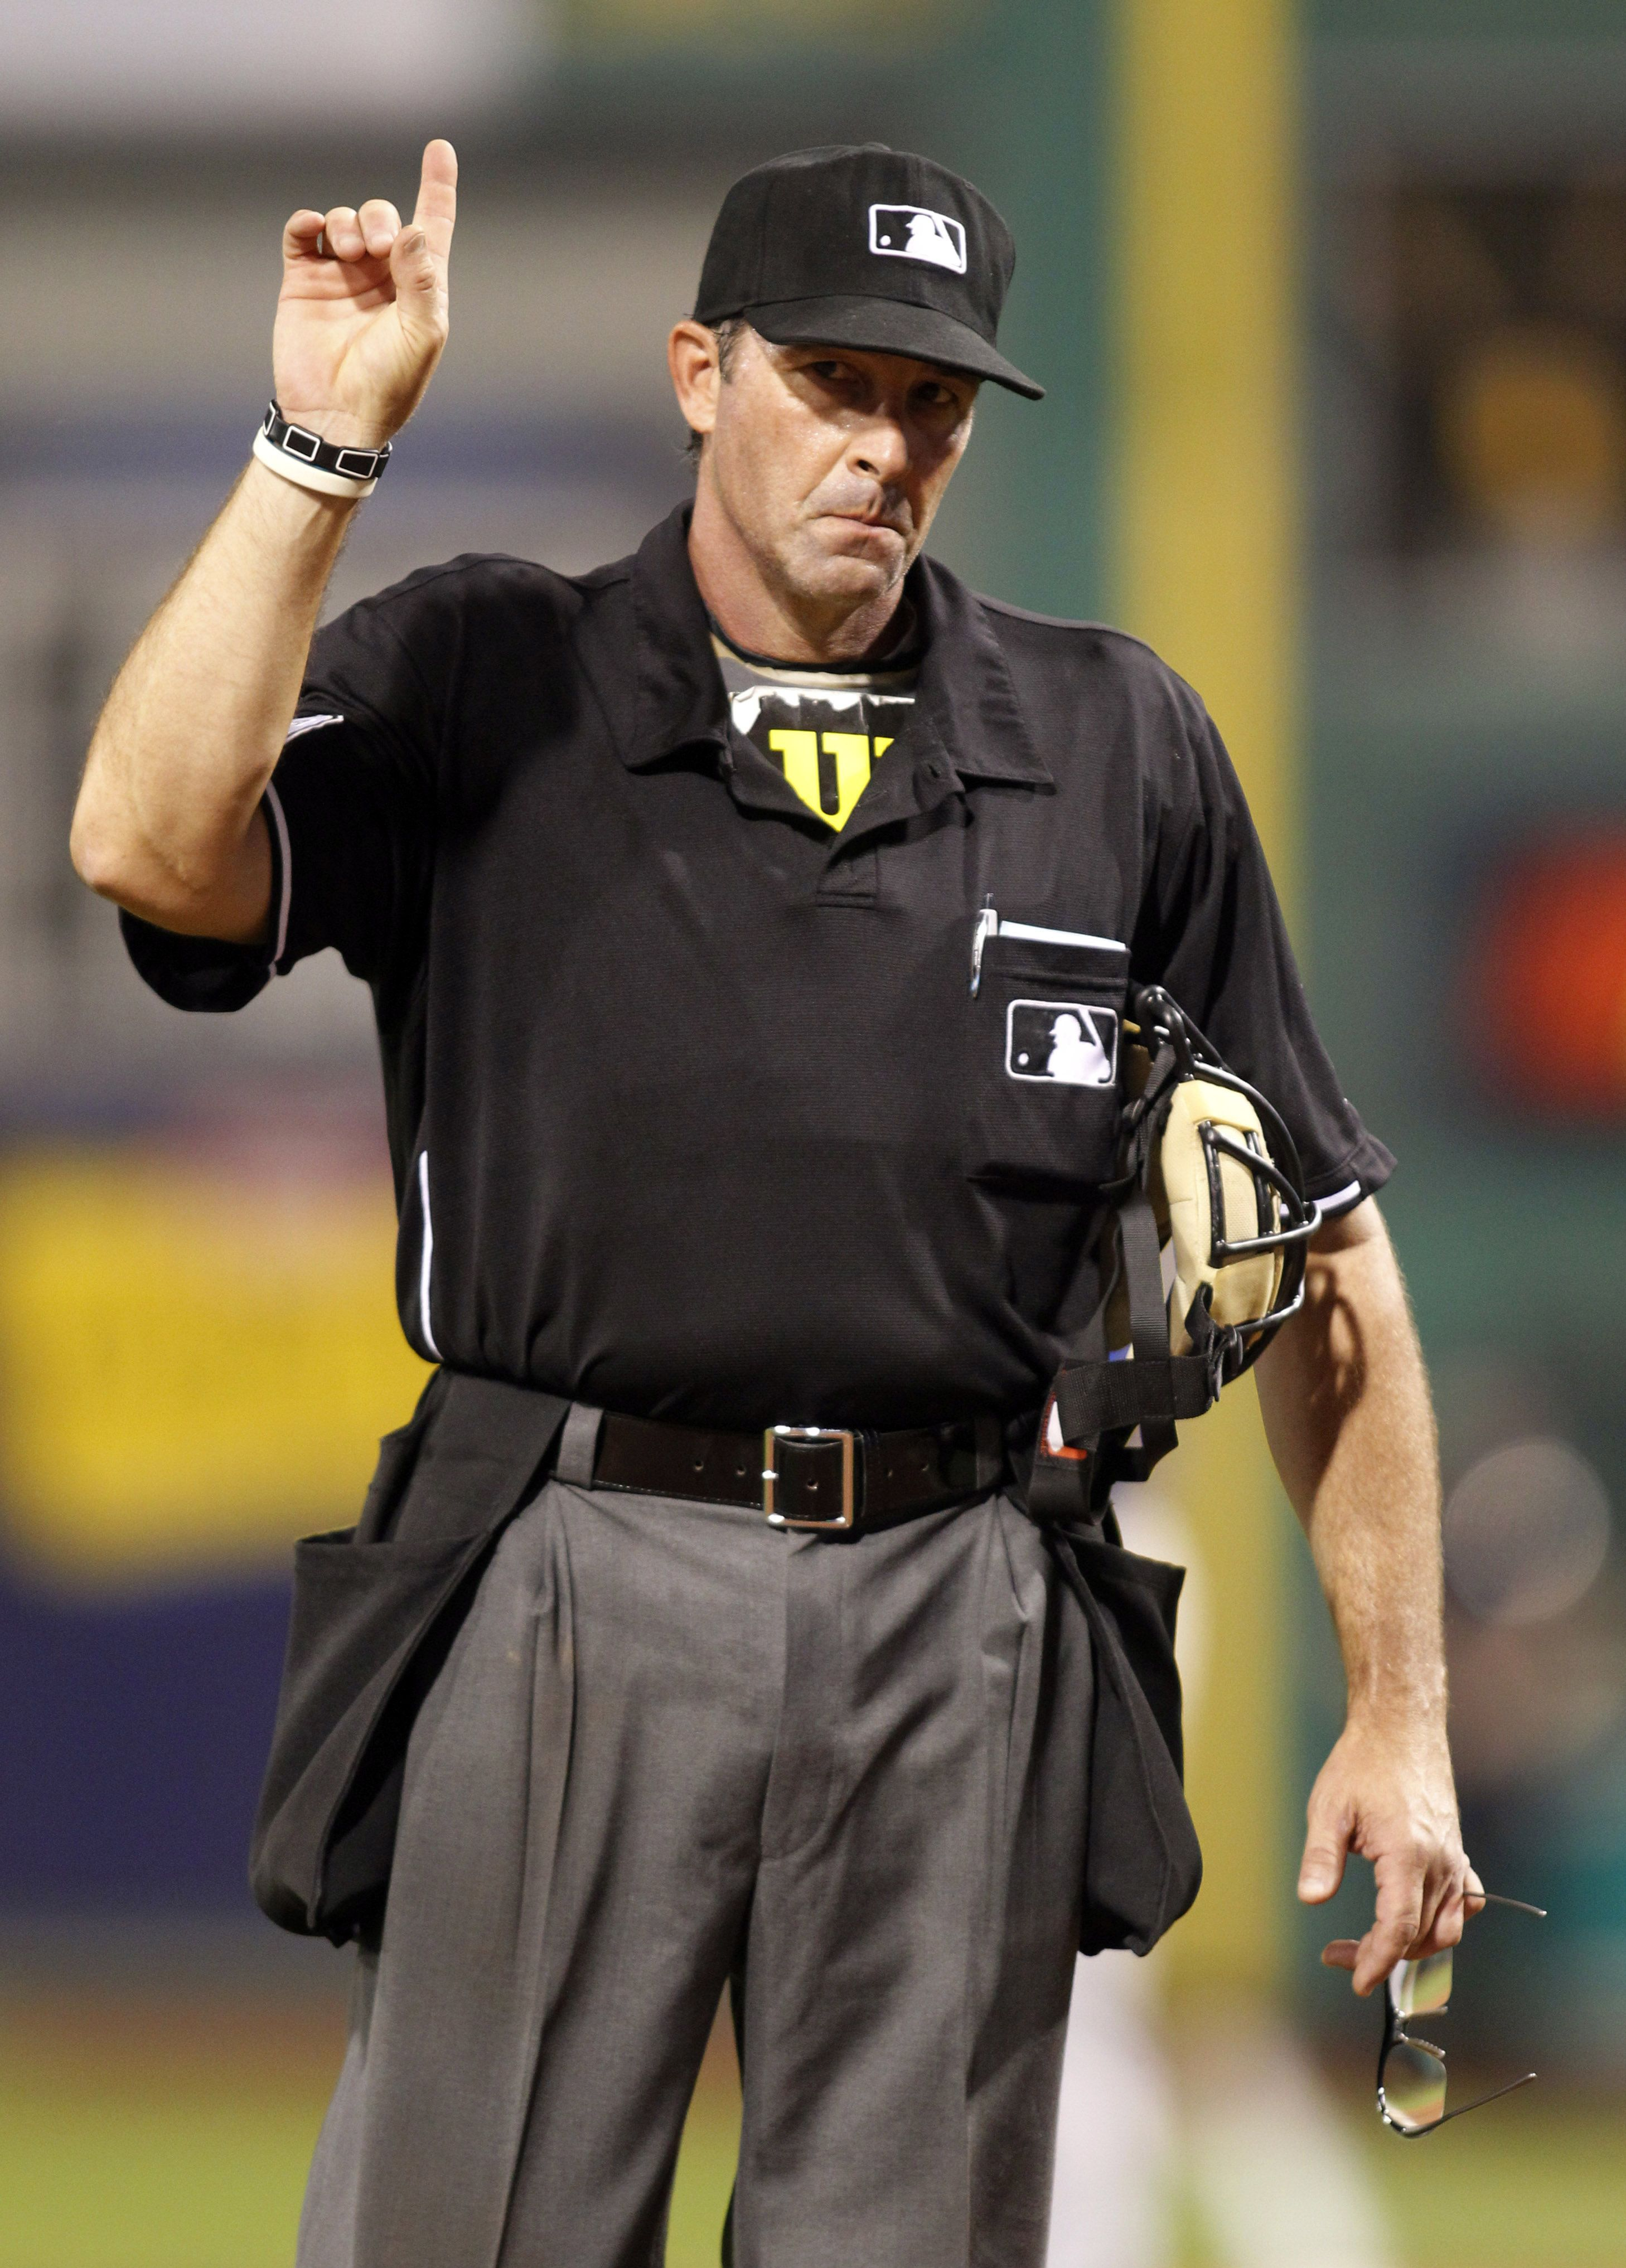 Crowdcam Hot Shot Home Plate Umpire Paul Nauert Reacts Between Innings Of The Chicago Cubs And Pittsburgh Pirate Pittsburgh Pirates Game Chicago Cubs Pnc Park